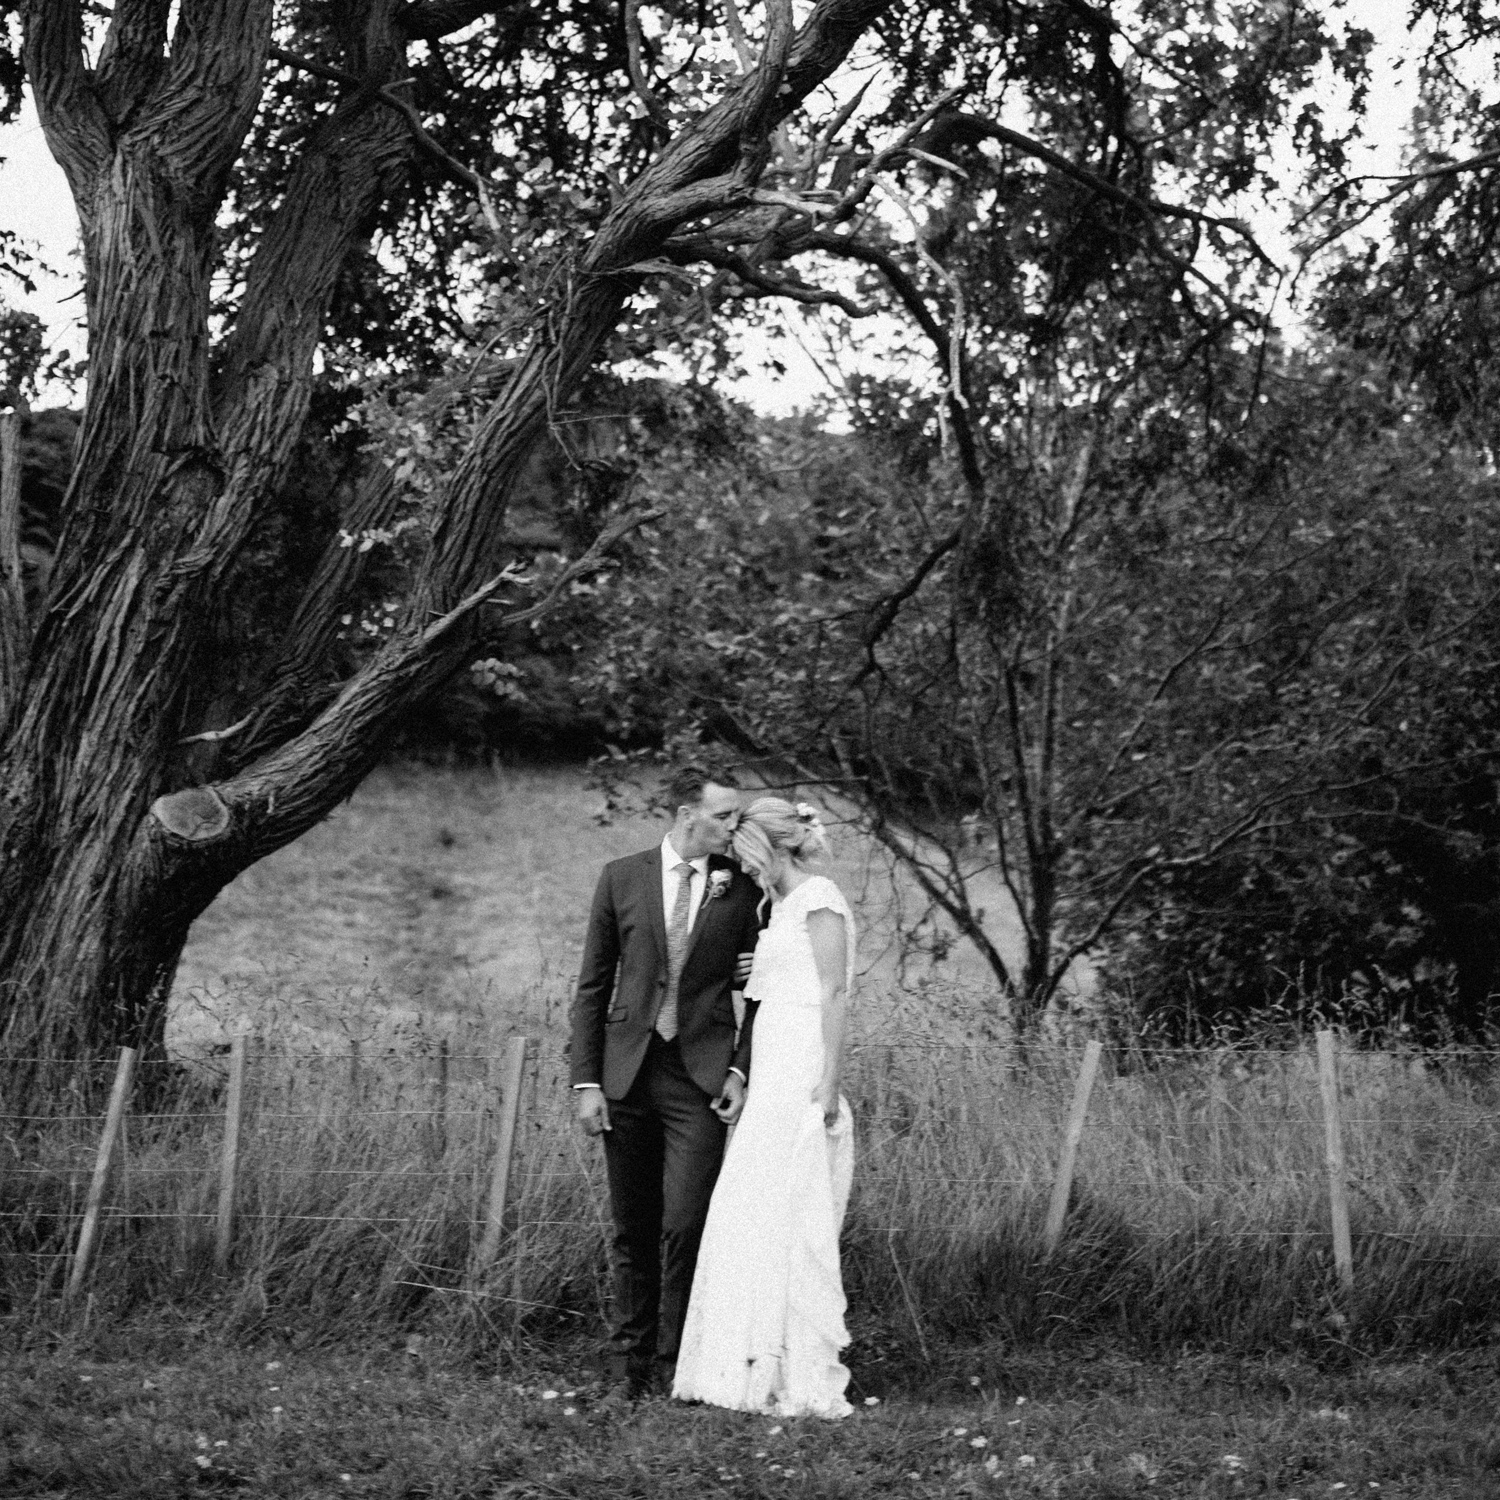 new-zealand-wedding-film-photographer-ryan-flynn-0047.JPG